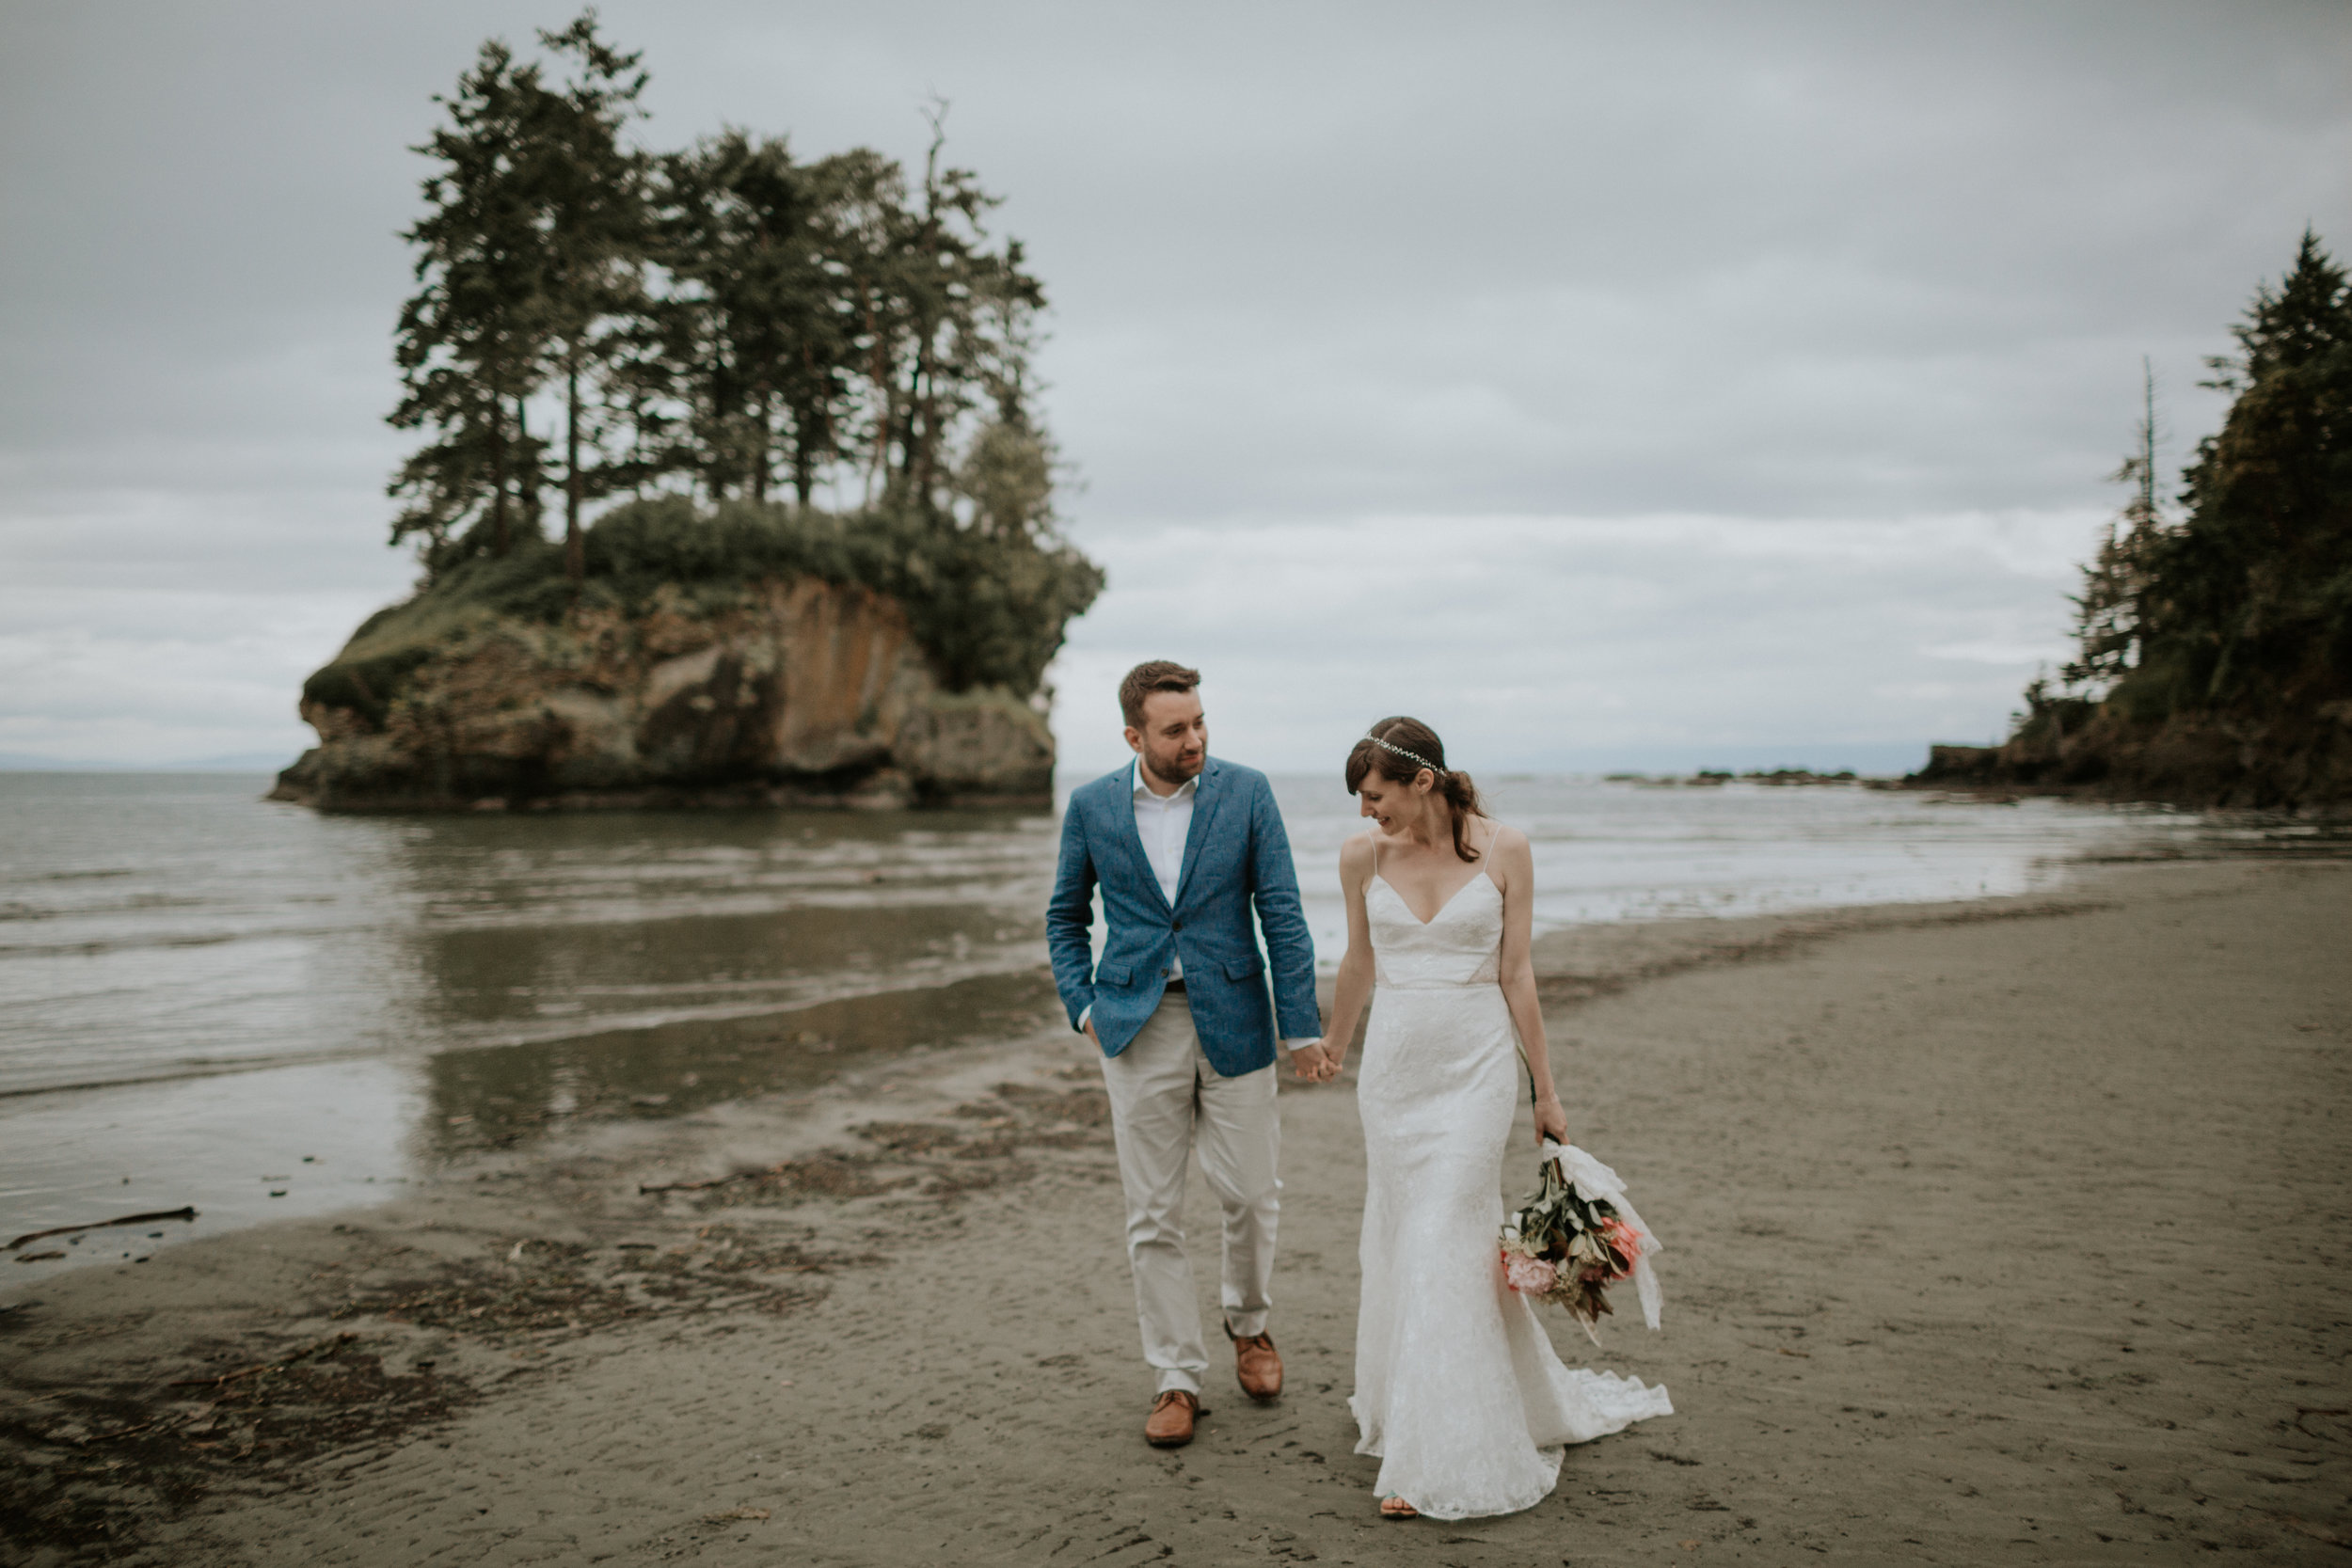 PNW-elopement-wedding-engagement-olympic national park-port angeles-hurricane ridge-lake crescent-kayla dawn photography- photographer-photography-kayladawnphoto-297.jpg